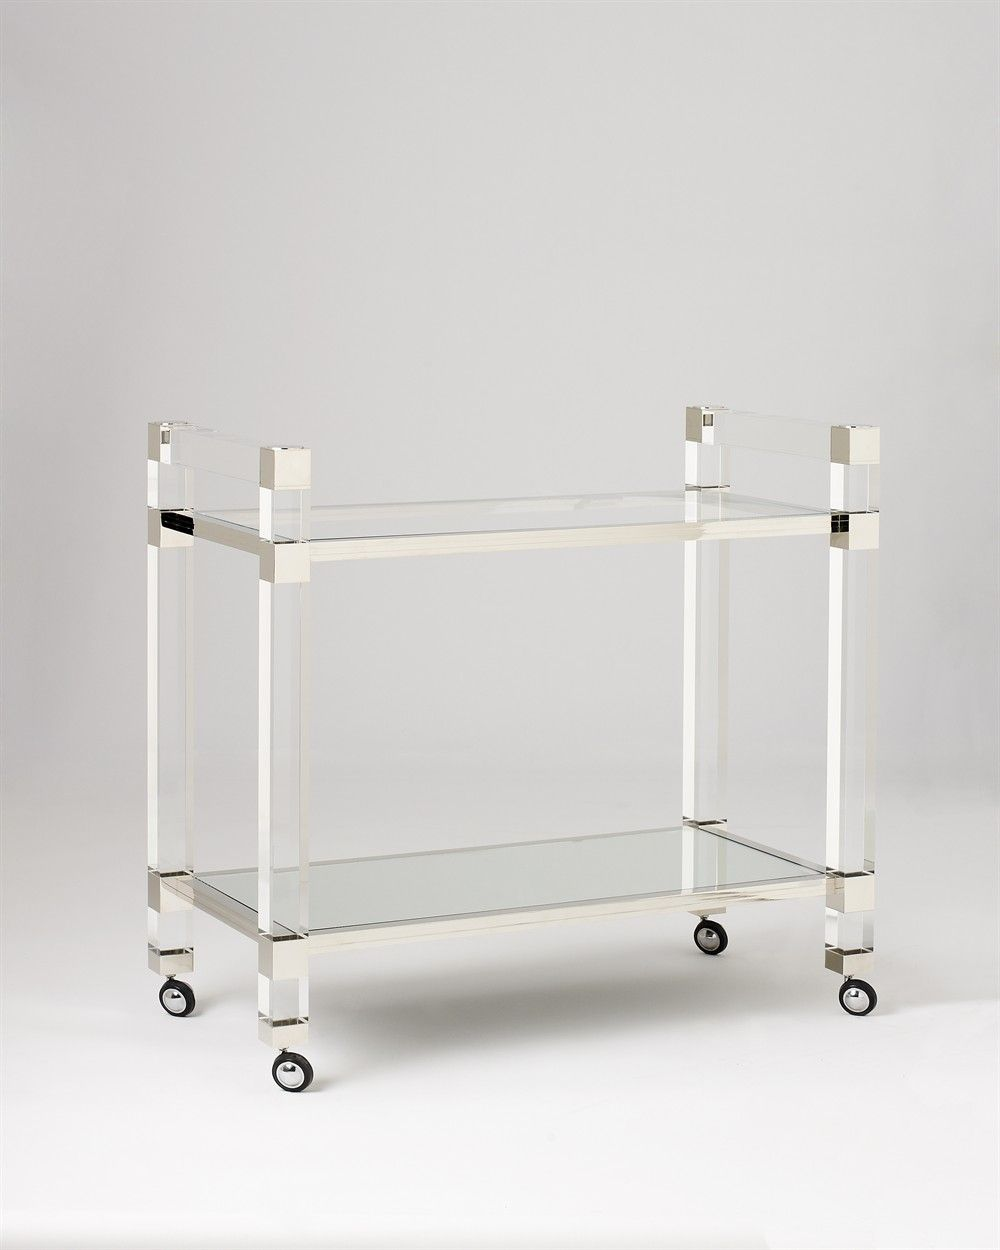 Captivating My Mom Has Tasked Me With Finding A Lucite Bar Cart...love This